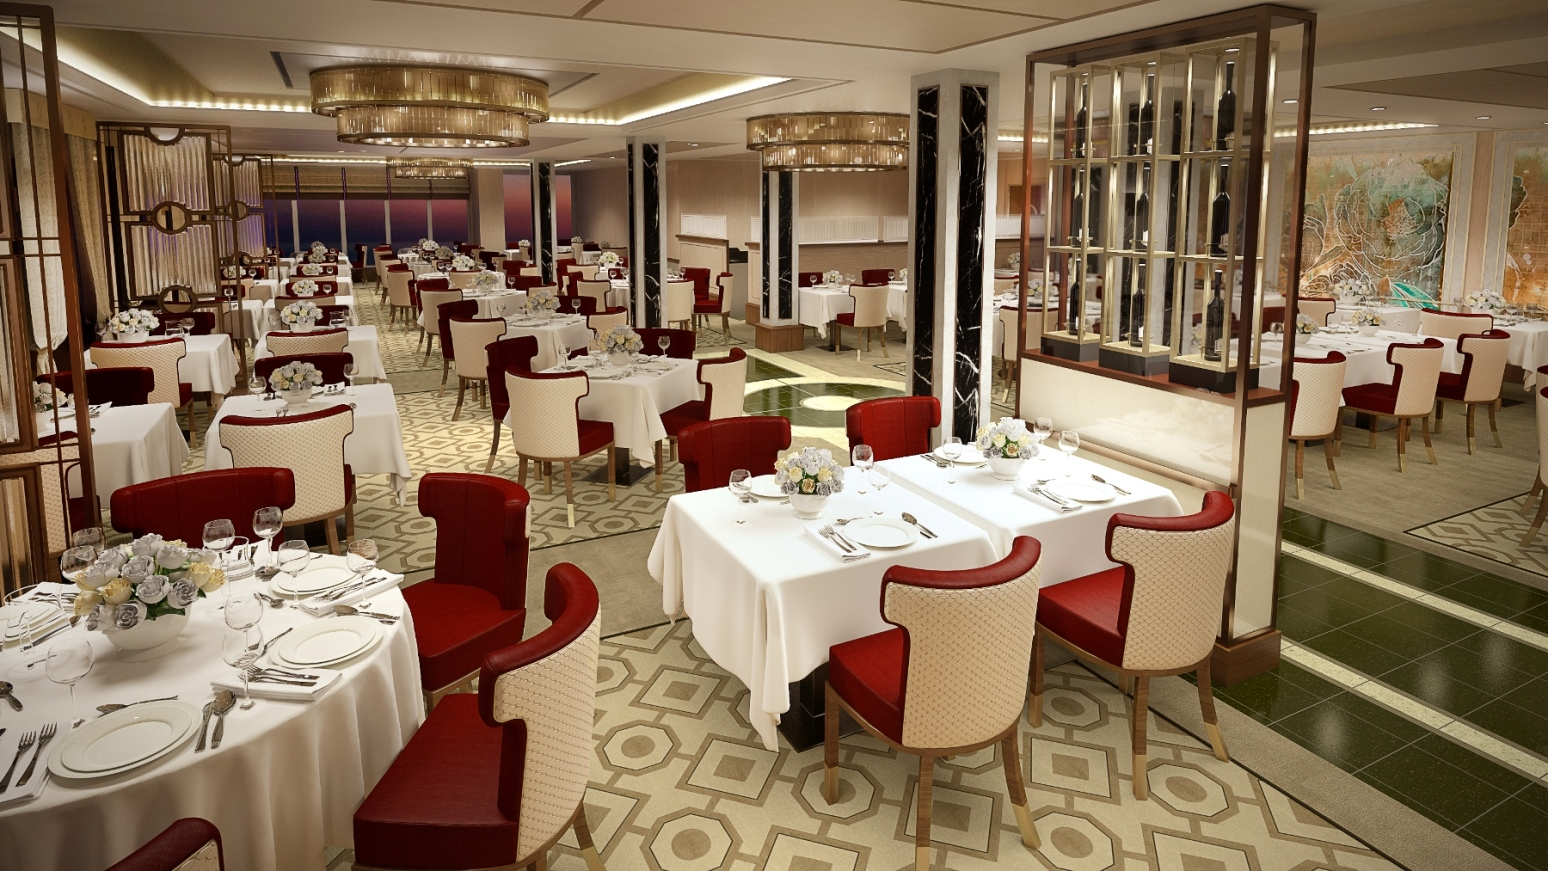 Queens Grill Restaurant Queen Mary 2 Render